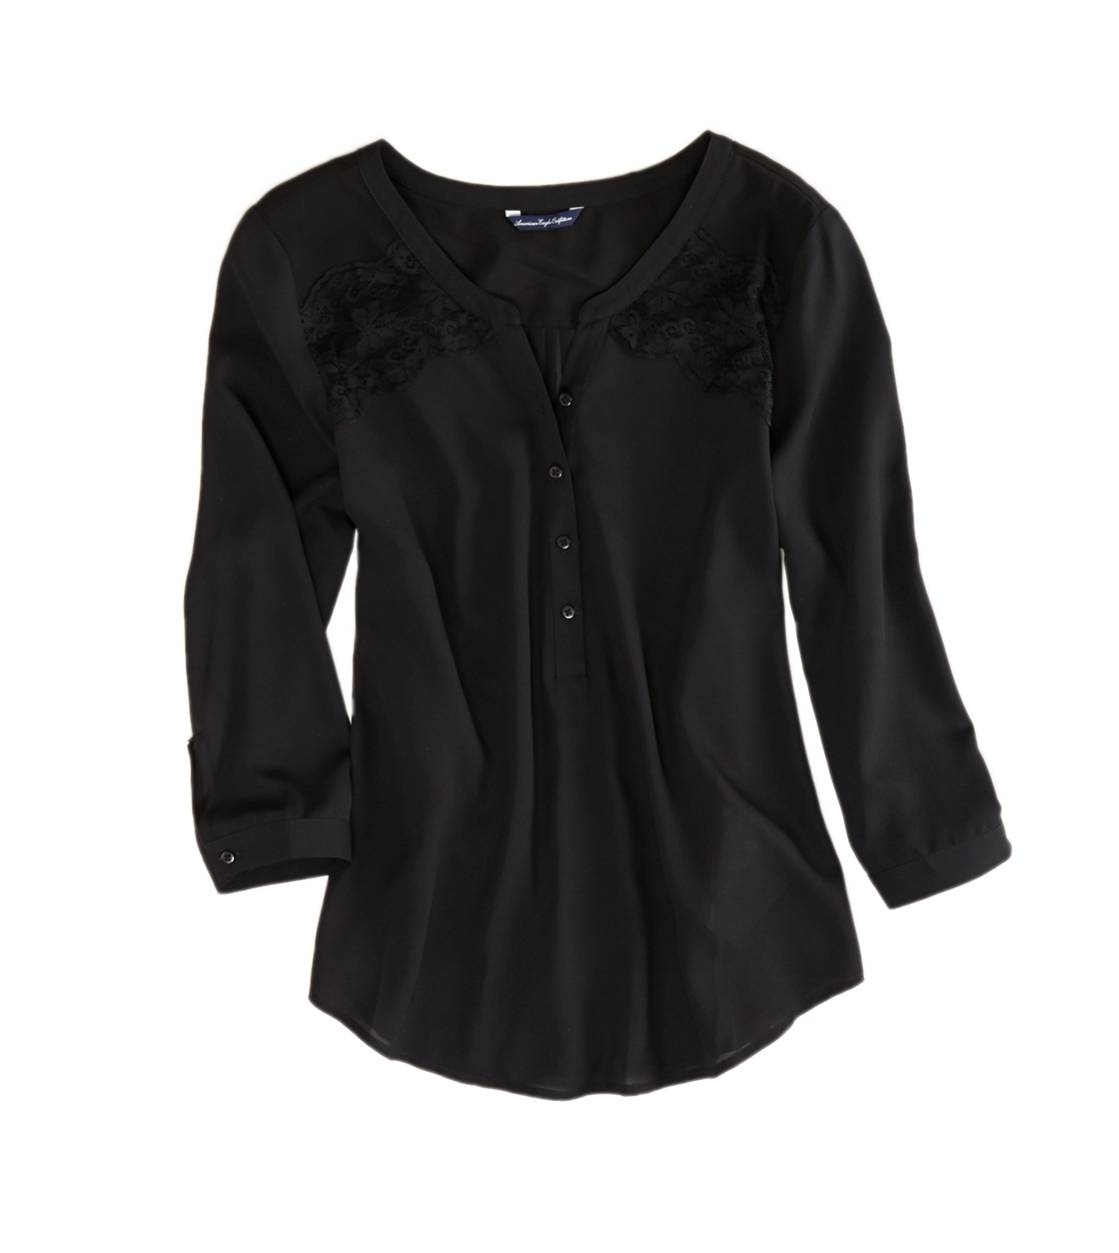 Black AE Paneled Lace Top